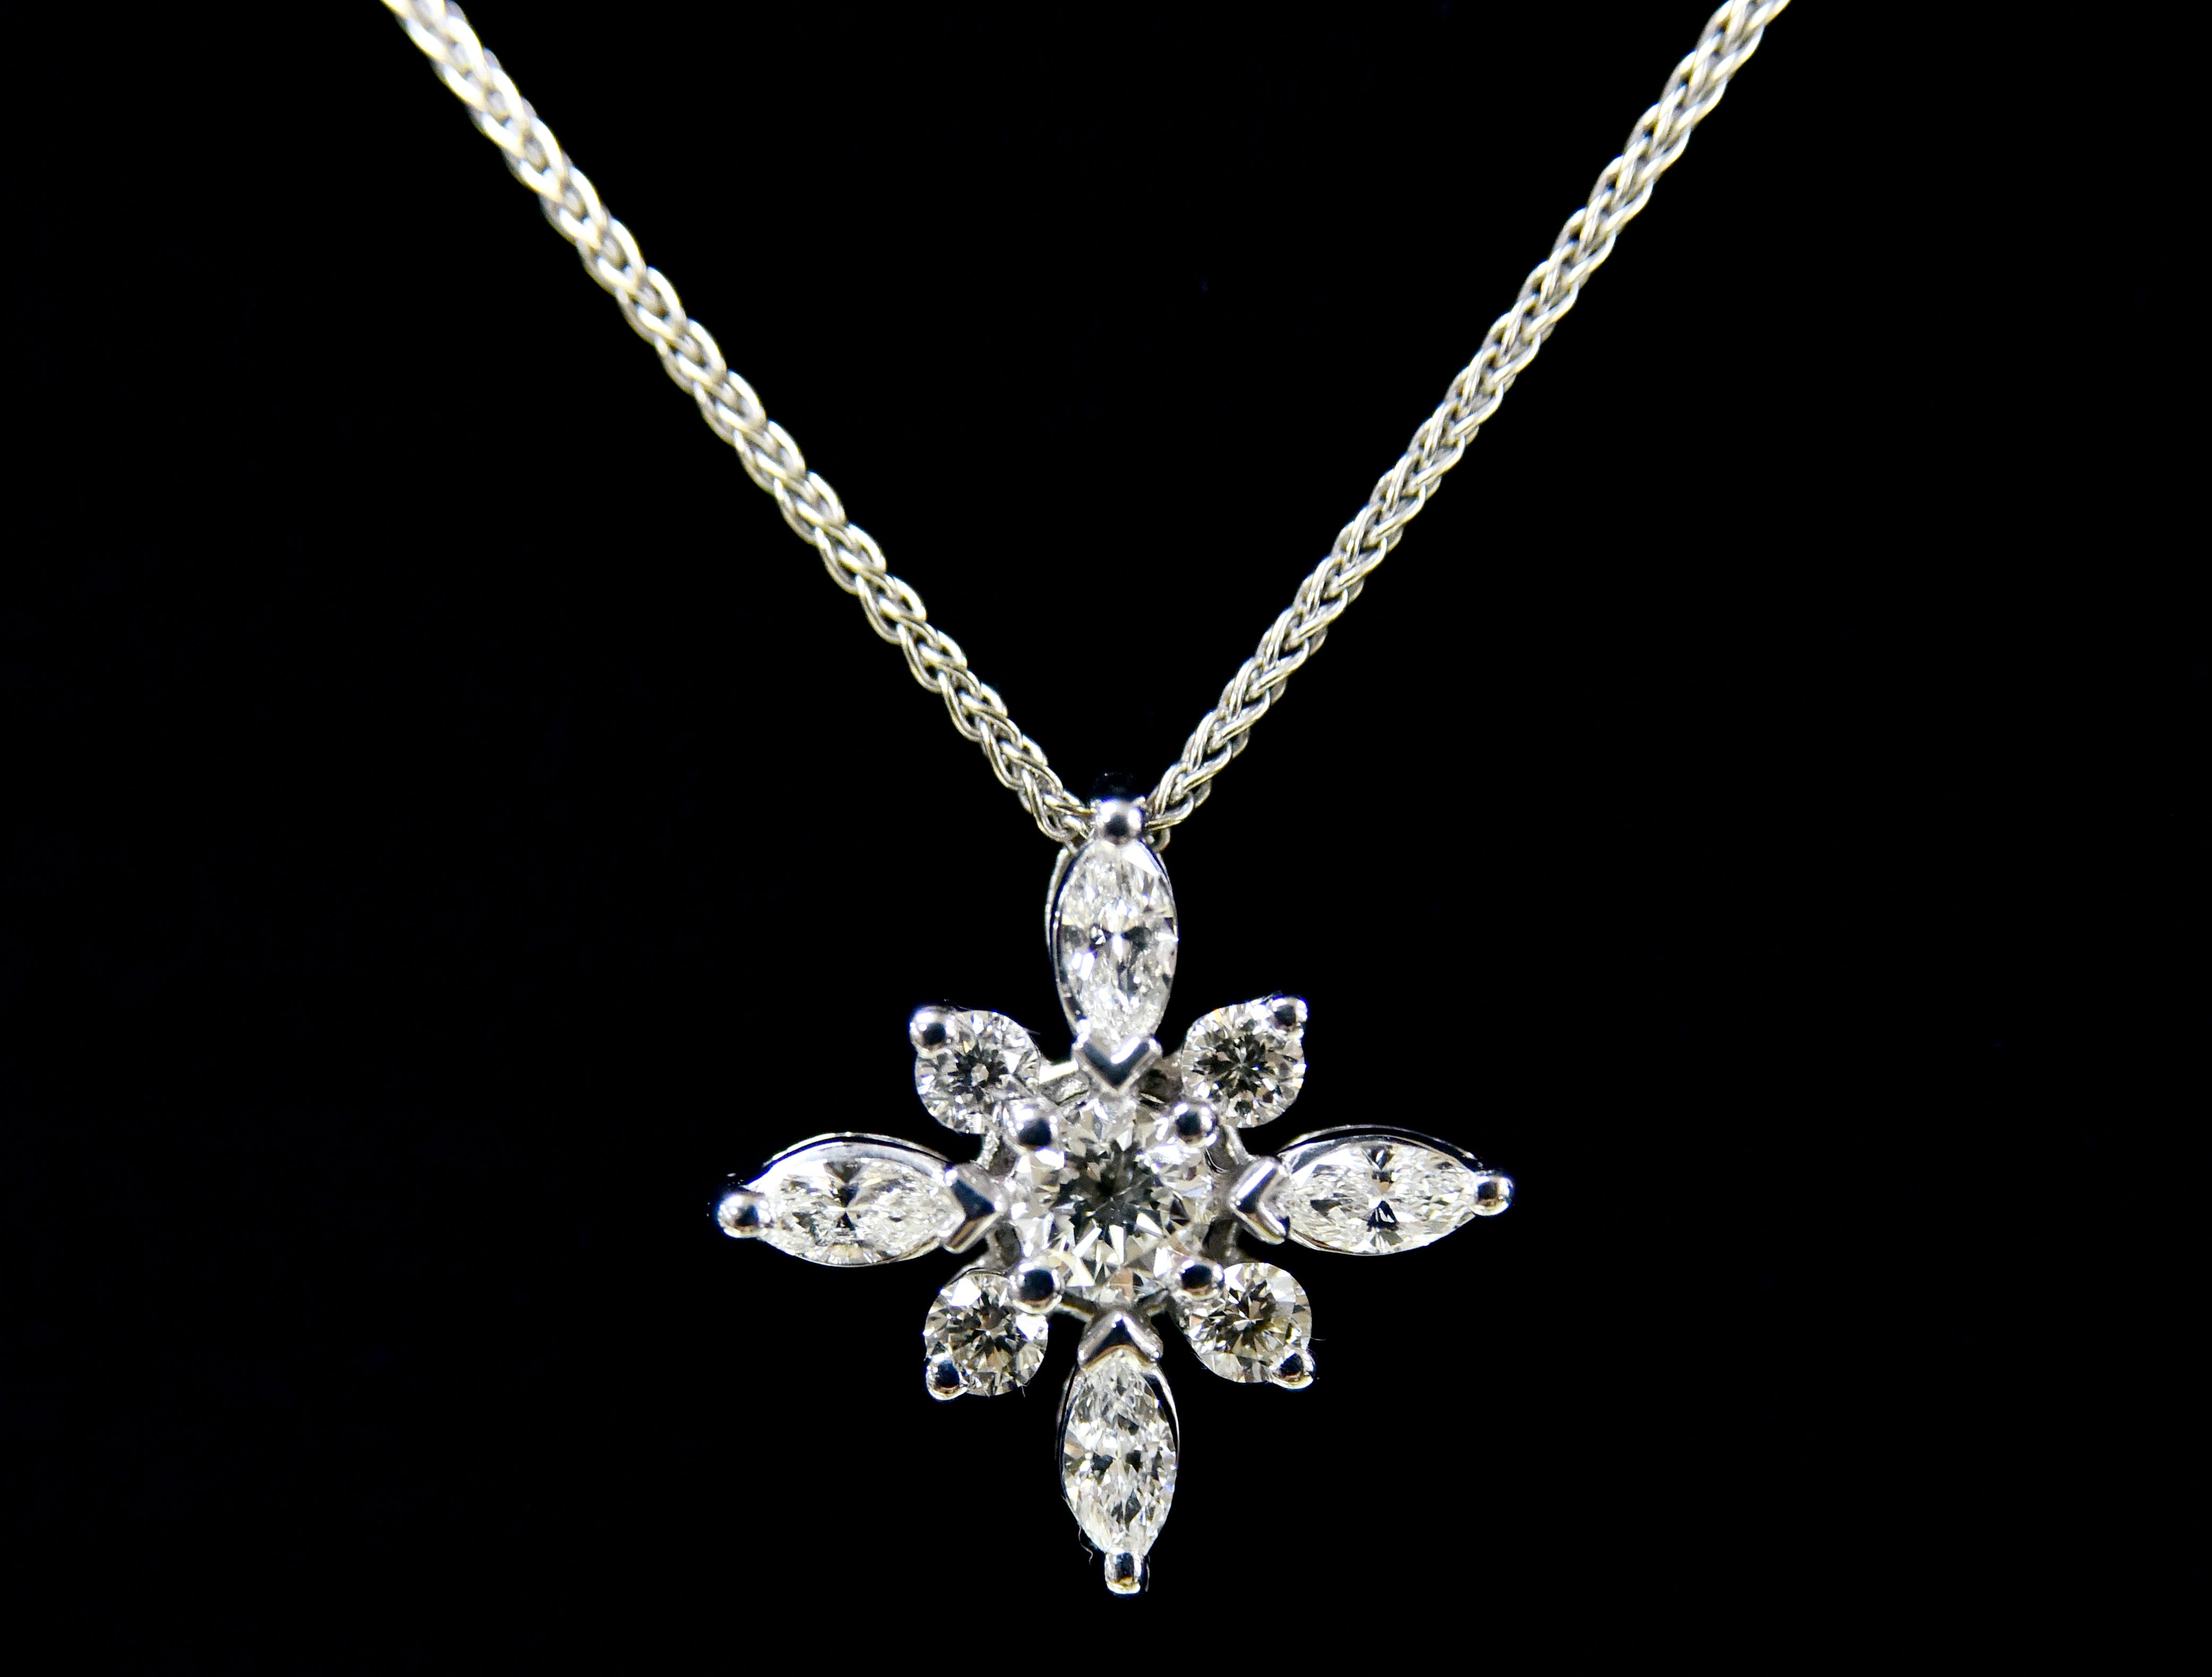 A handmade diamond pendant necklace from Julie's Jewels and Gifts